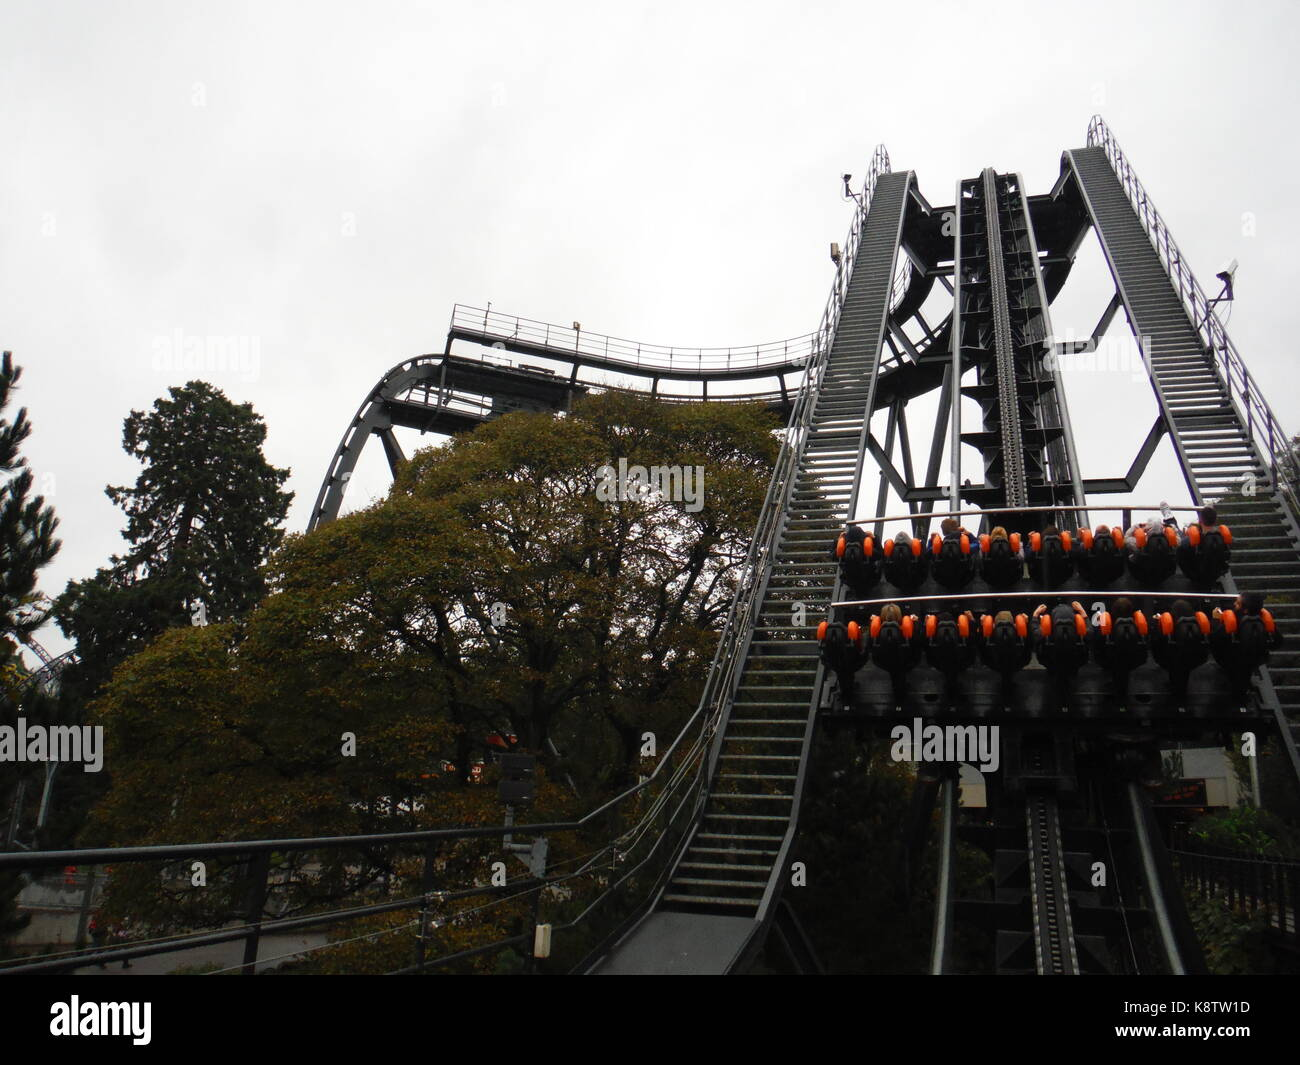 The Oblivion, Alton Towers - Stock Image